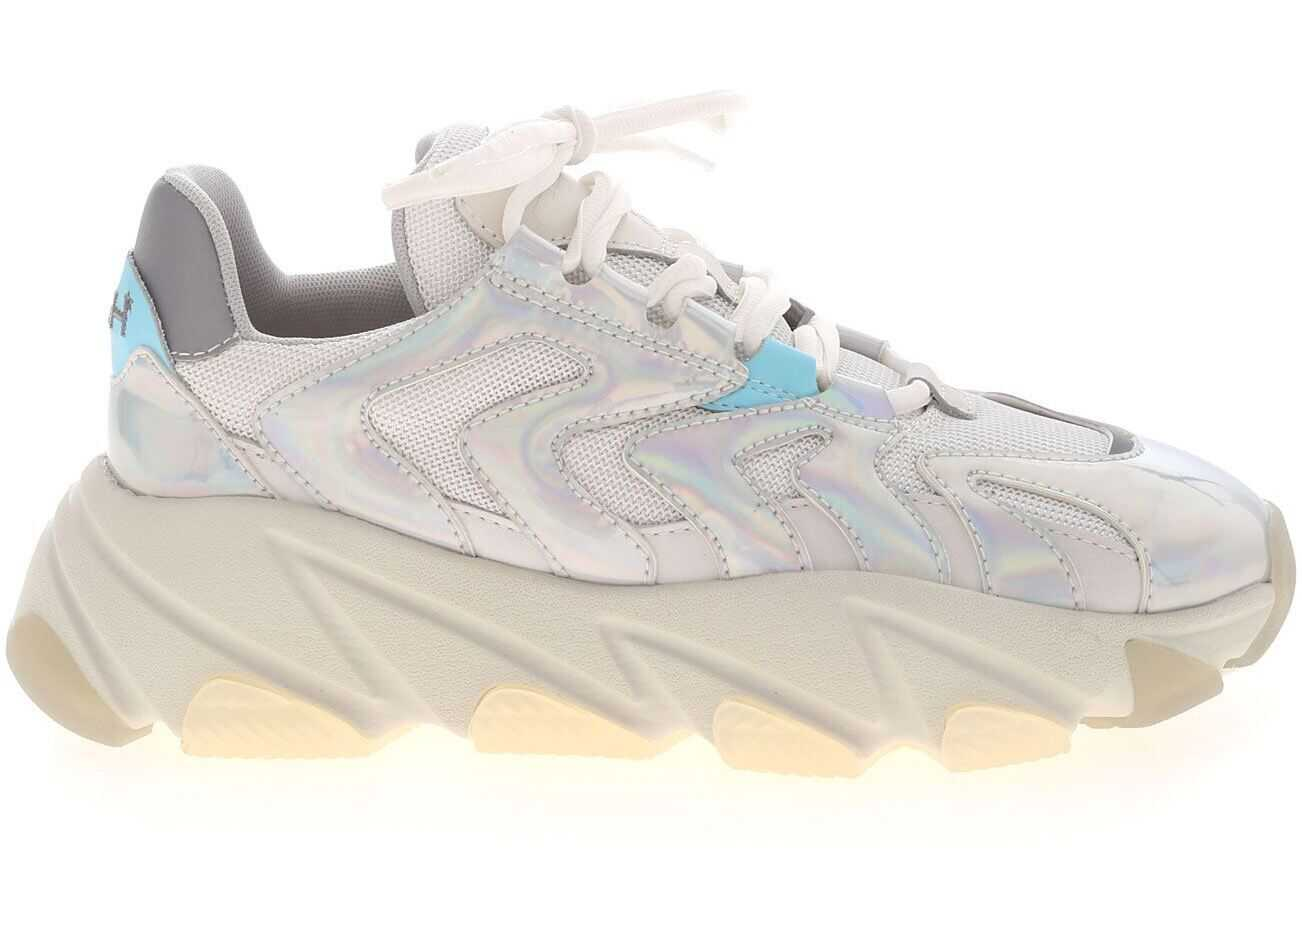 ASH Extreme Sneakers In White And Silver Silver